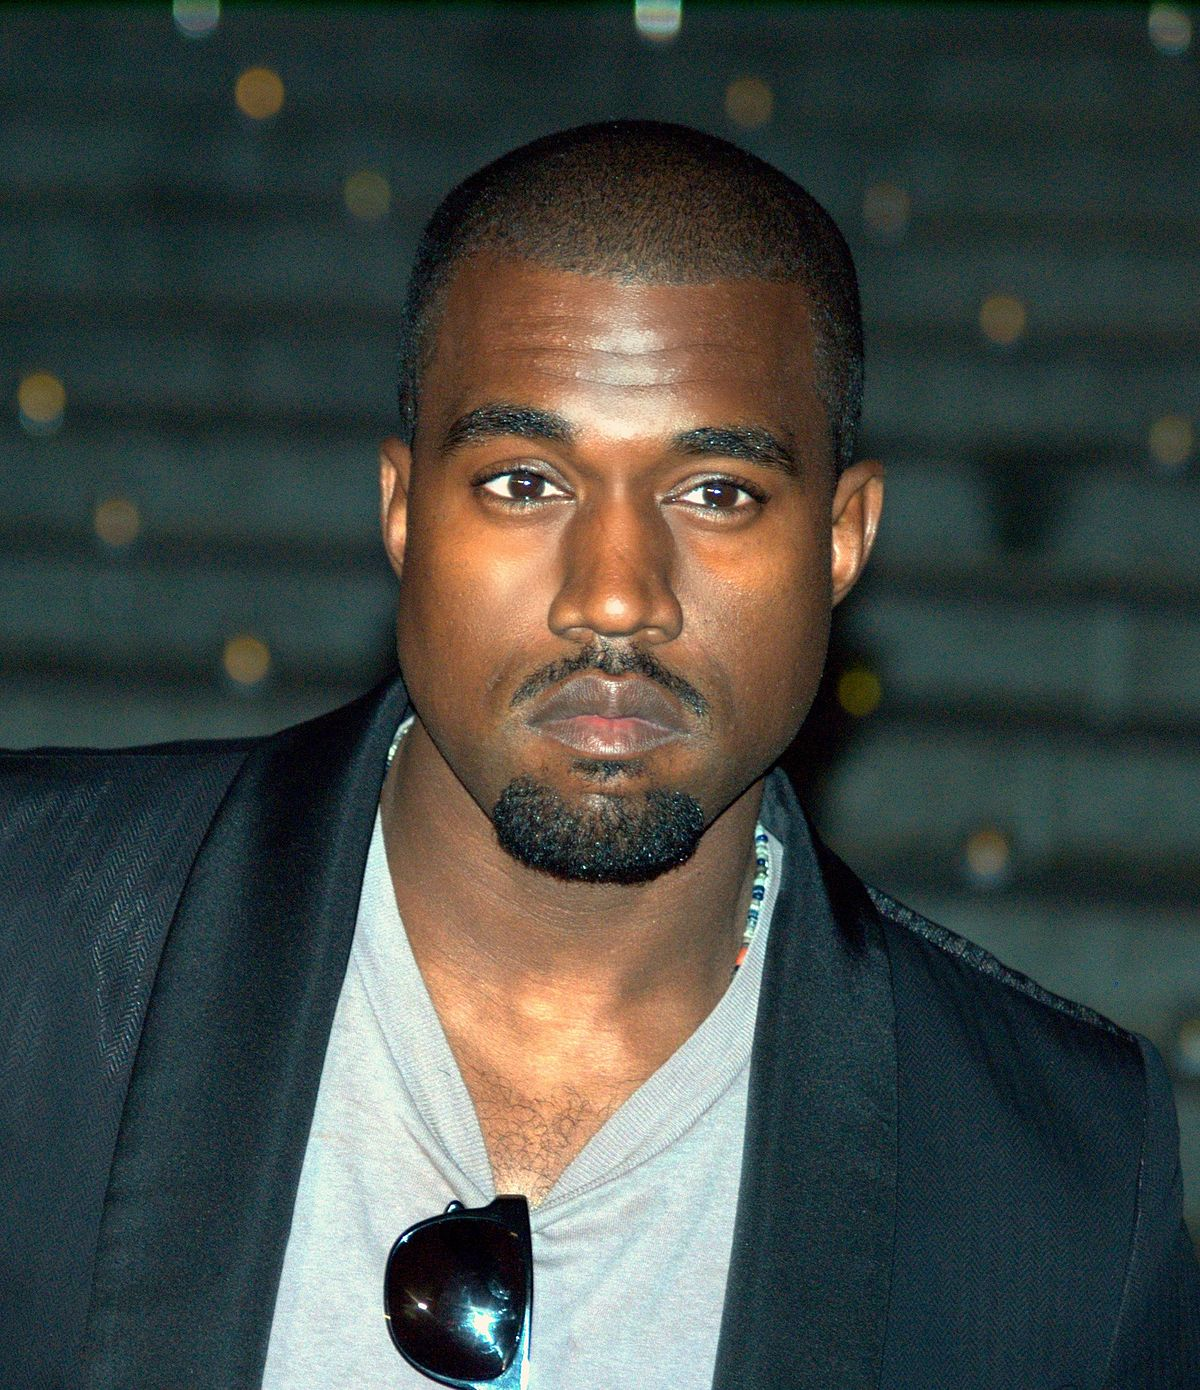 Kanye West at the 2009 Tribeca Film Festival.jpg